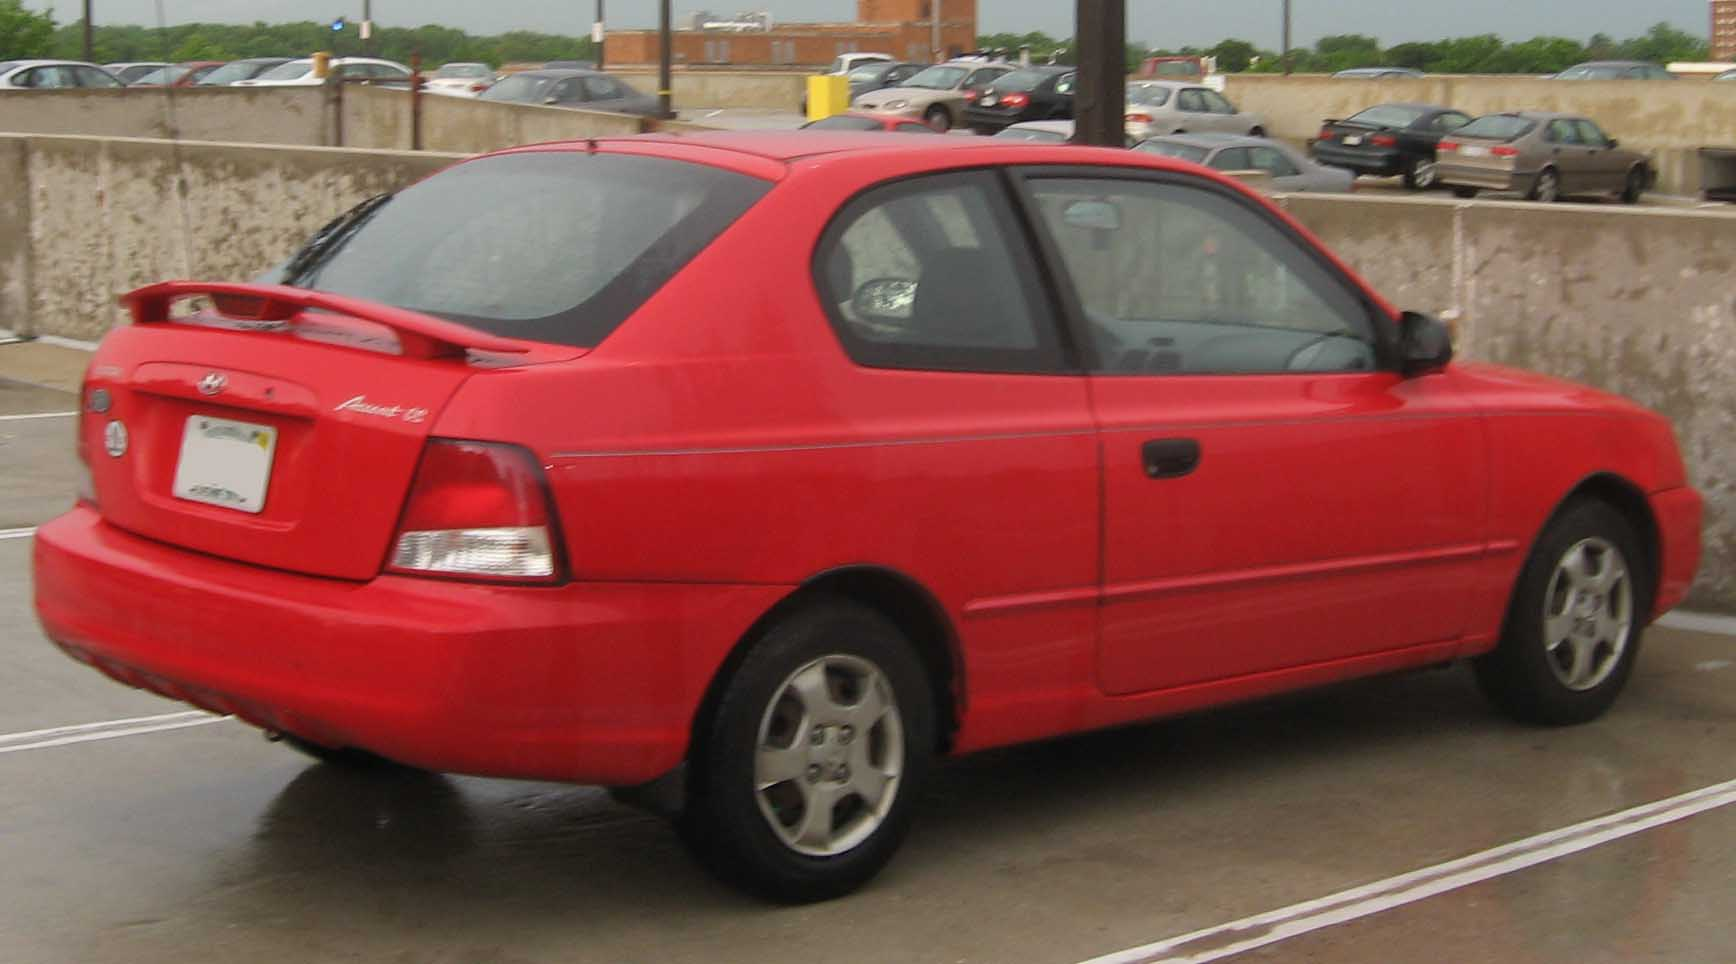 1991 hyundai excel with File 00 02 Hyundai Accent Hatch on 1991 Hyundai Galloper Pictures C18783 likewise File 00 02 Hyundai Accent GL sedan as well 289578 Lowrider Mustang additionally File 00 02 Hyundai Accent hatch moreover 2002 Hyundai Sonata Pictures C2191 pi36196605.